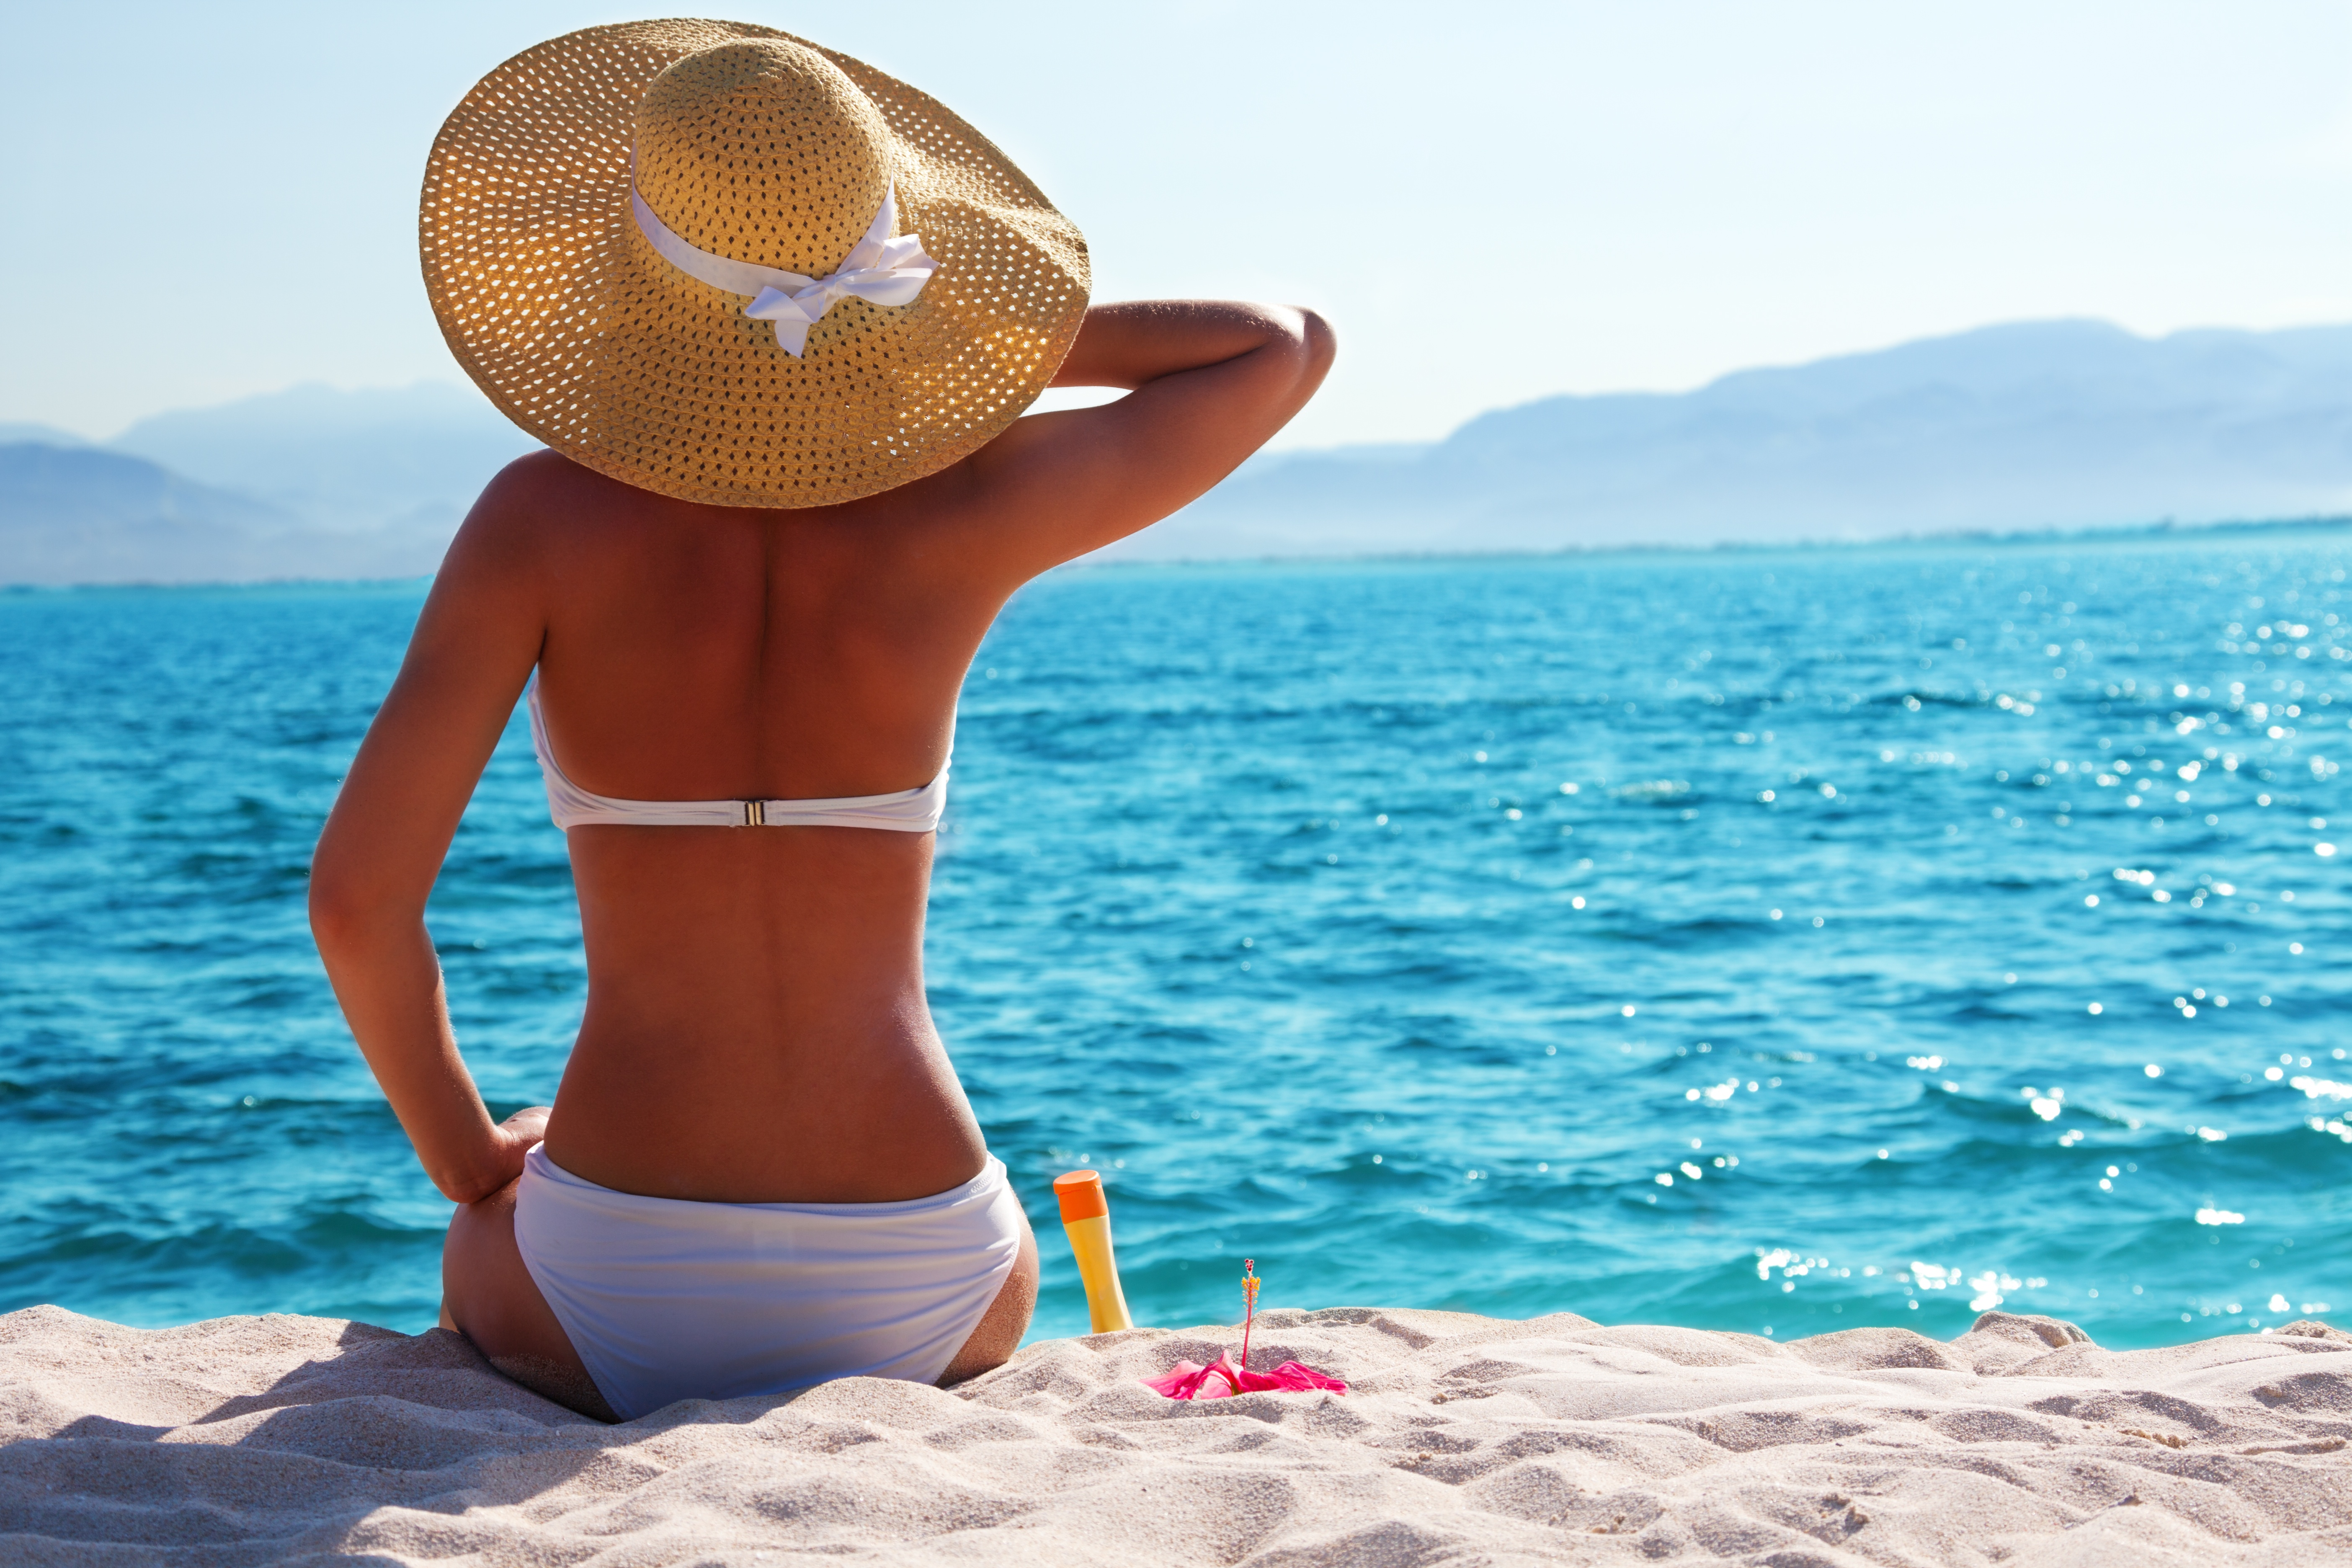 woman sitting on the beach wearing hat and bathing suit